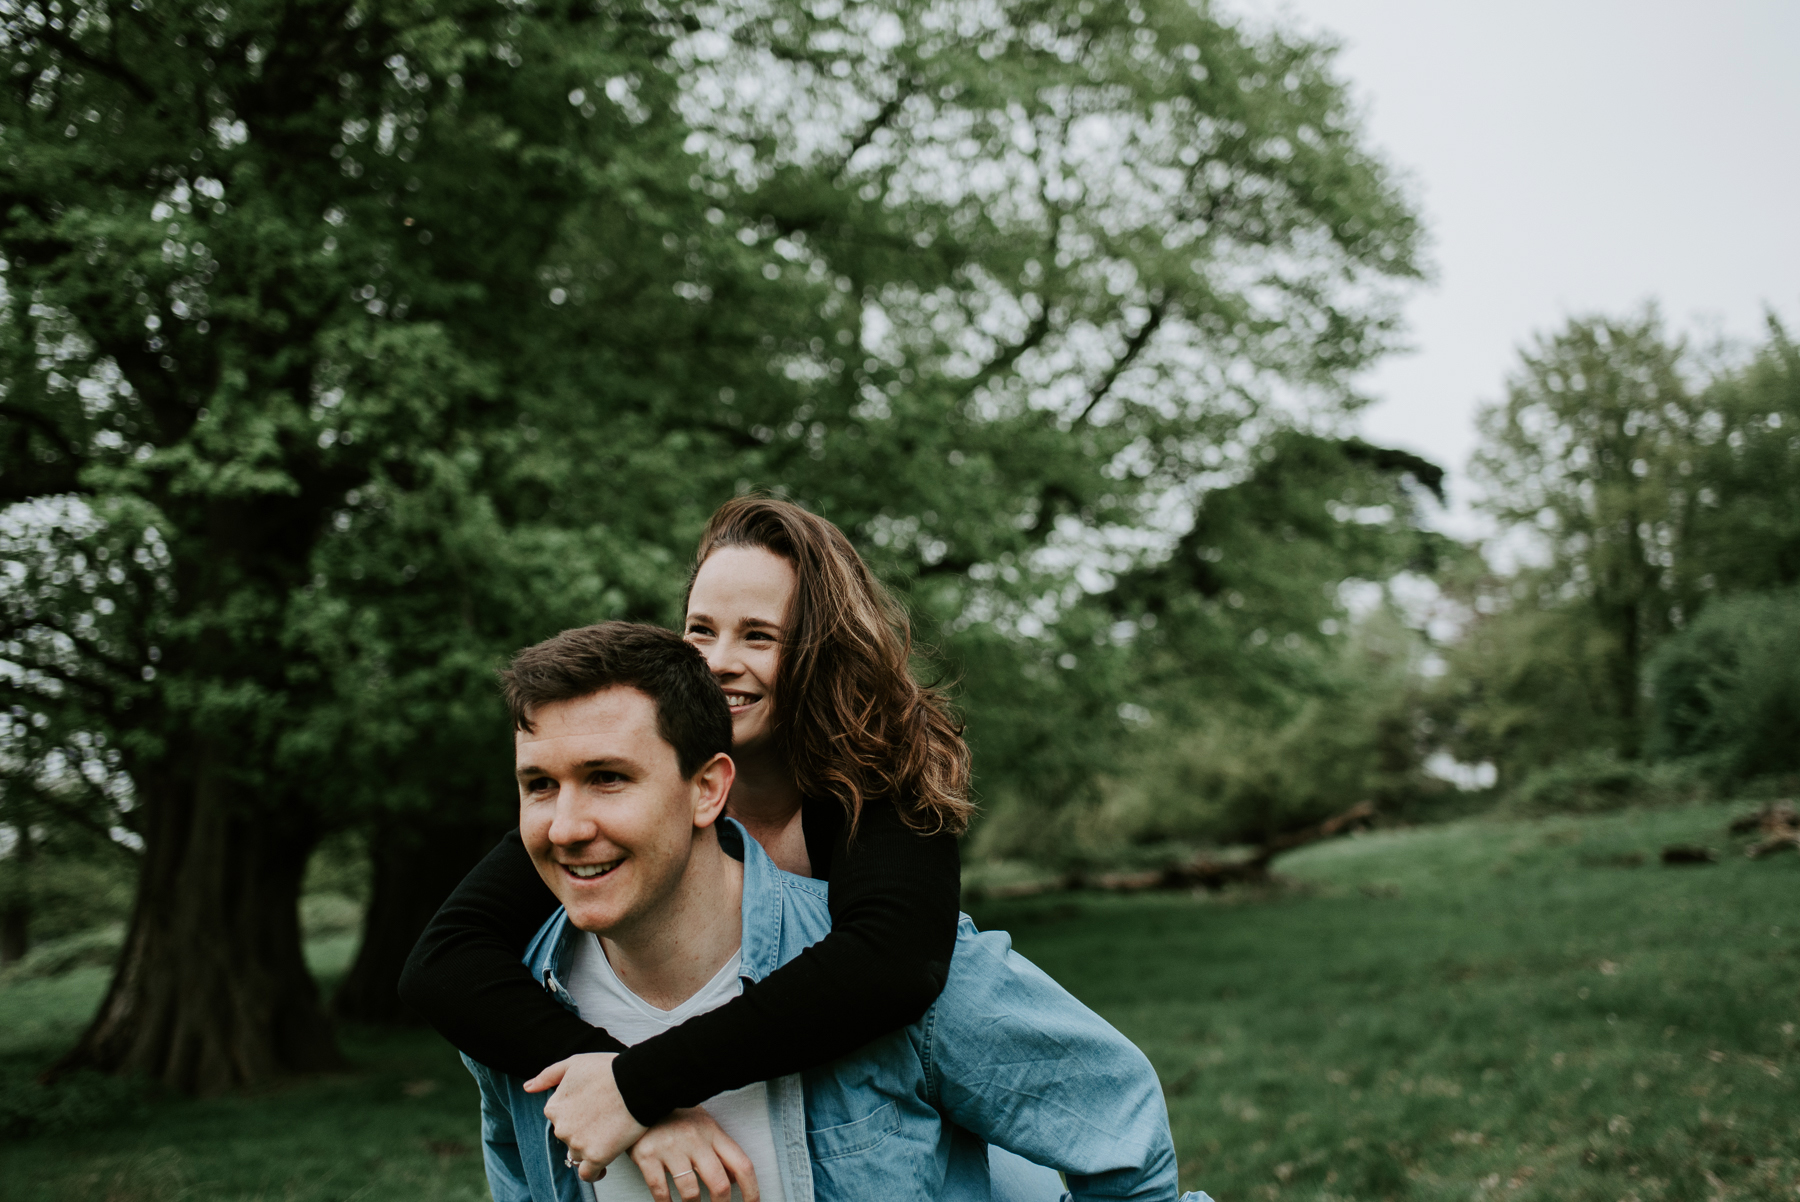 A playful portrait of a couple in Richmond park. He is giving her a piggy back ride and they are both smiling. It is spring and they are having an engagement session.